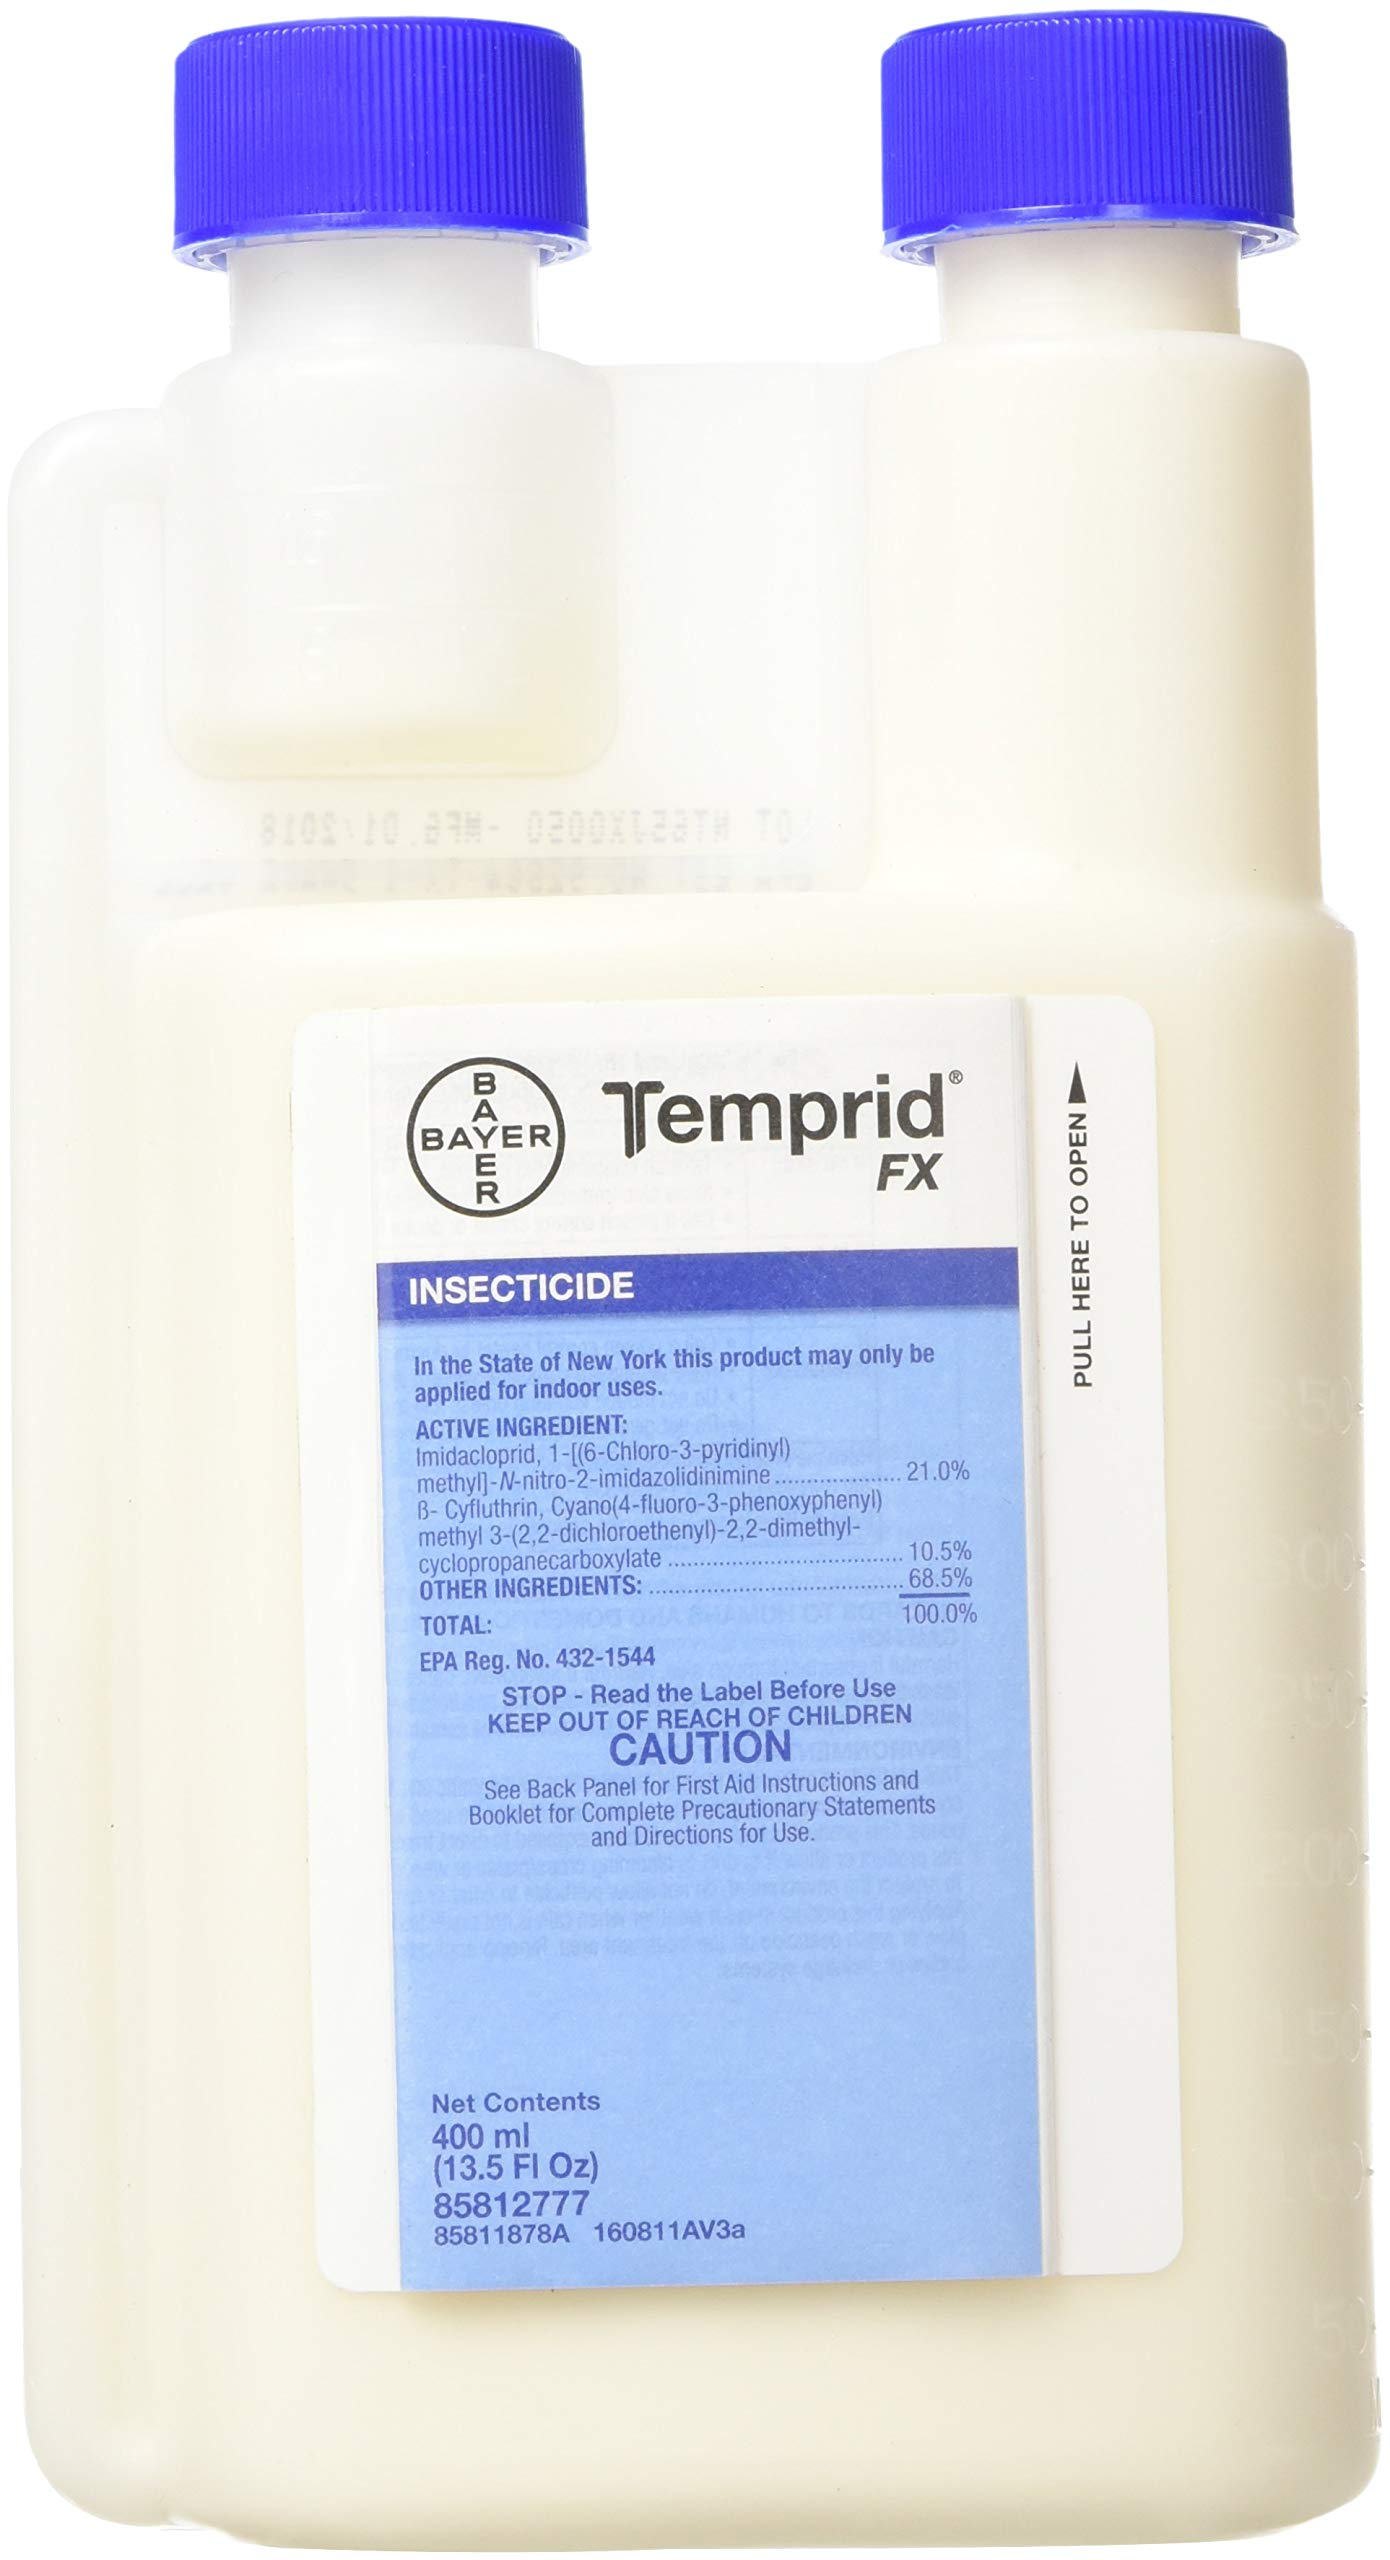 Bayer 834022 Temprid FX Insecticide, 13.5oz by Bayer